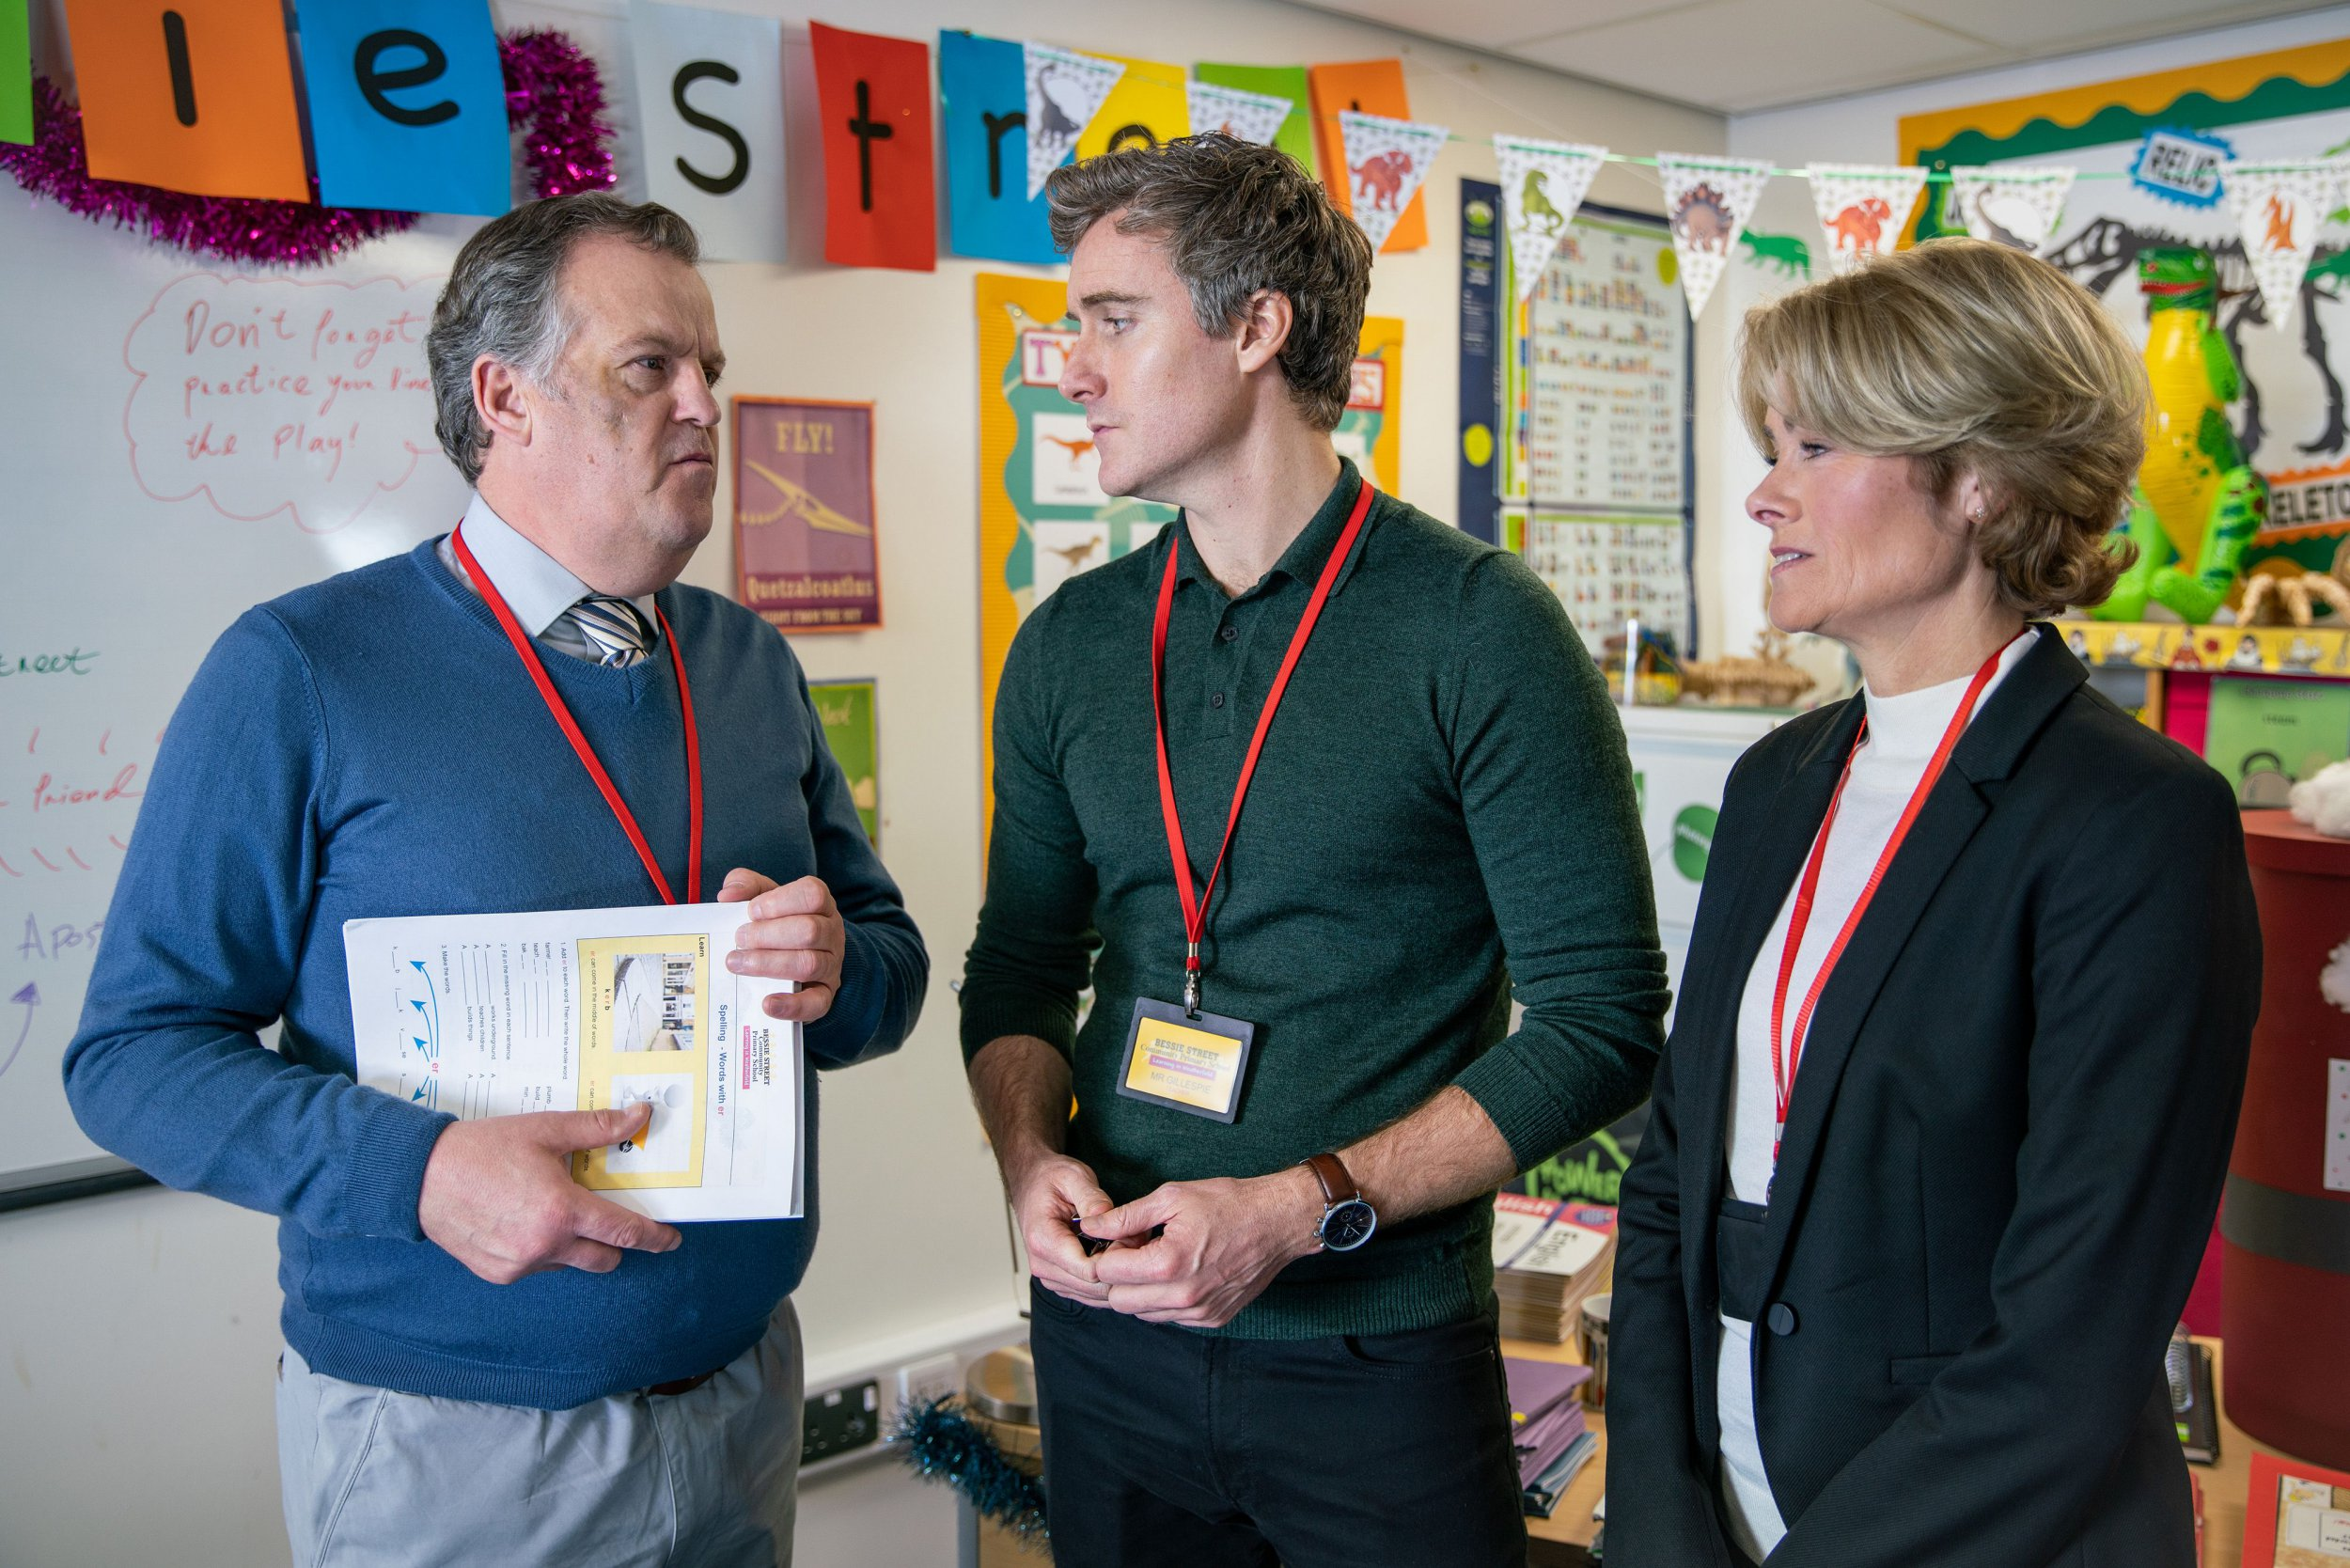 Editorial use only Mandatory Credit: Photo by ITV/REX/Shutterstock (10003689aj) Ep 9638 Friday 14th December 2018 - 1st Ep Brian Packham's, as played by Peter Gunn, alarmed when Phil, as played by Tom Turner, and the headmistress, as played by Janet Dibley, to observe his class without prior 'Coronation Street' TV Show UK - 2018